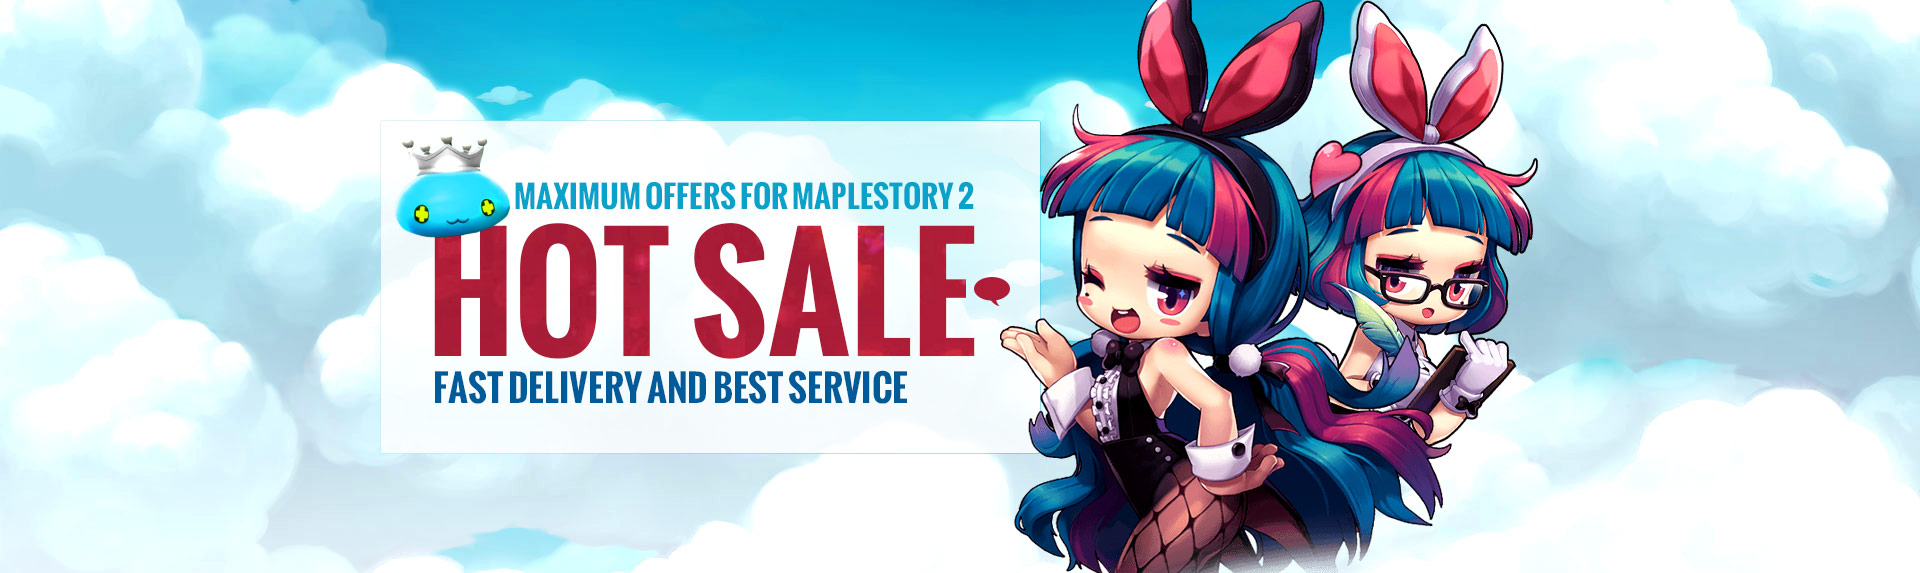 Cheap Maplestory Mesos Hot Sale